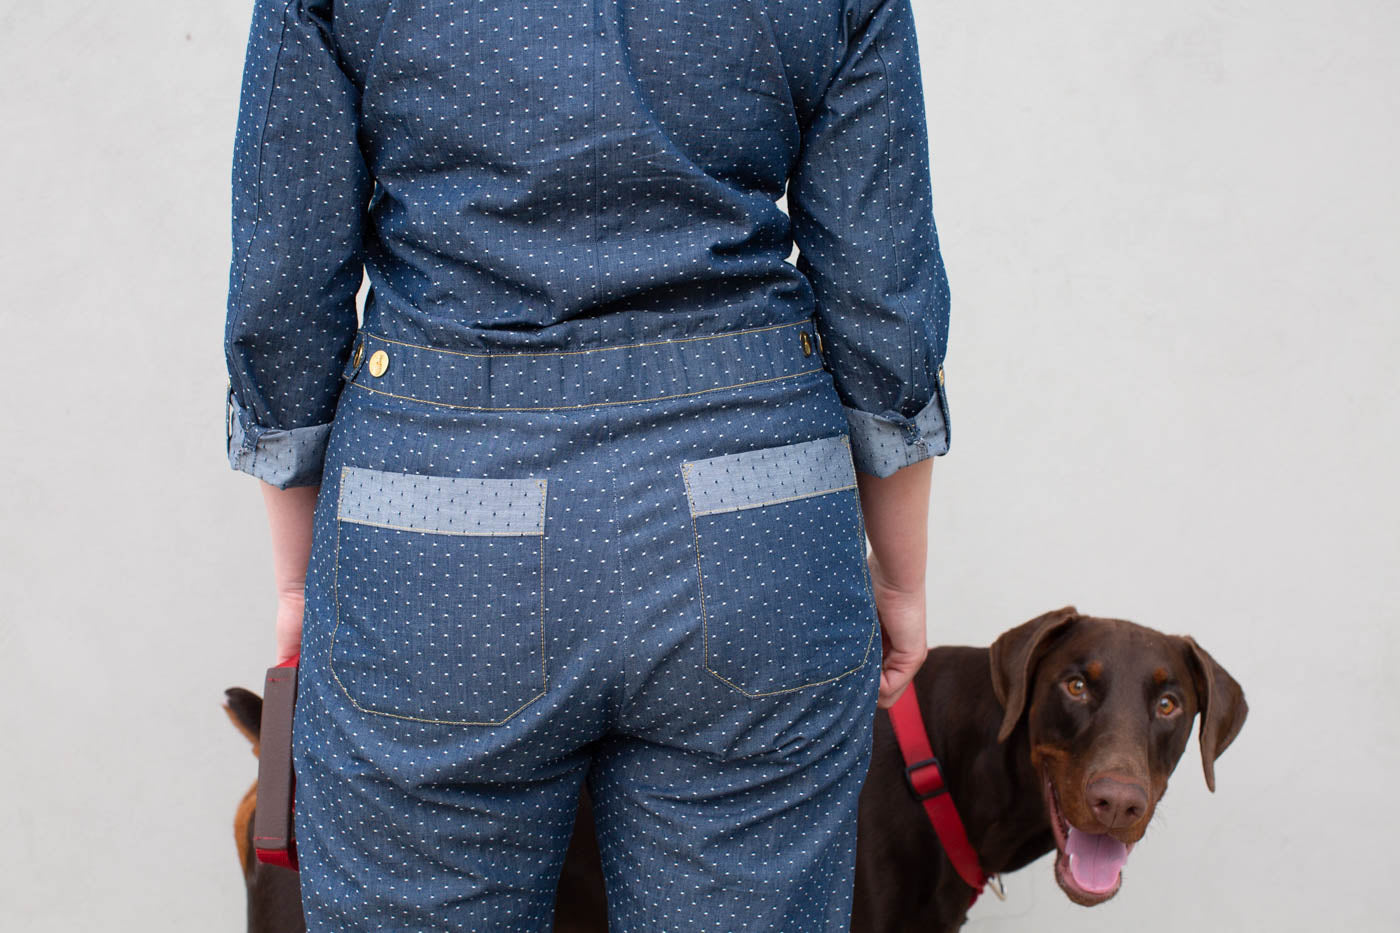 Detail photograph of back pockets on a boiler jumpsuit in indigo and white dots.  Brown dog is peeking around to say hello.